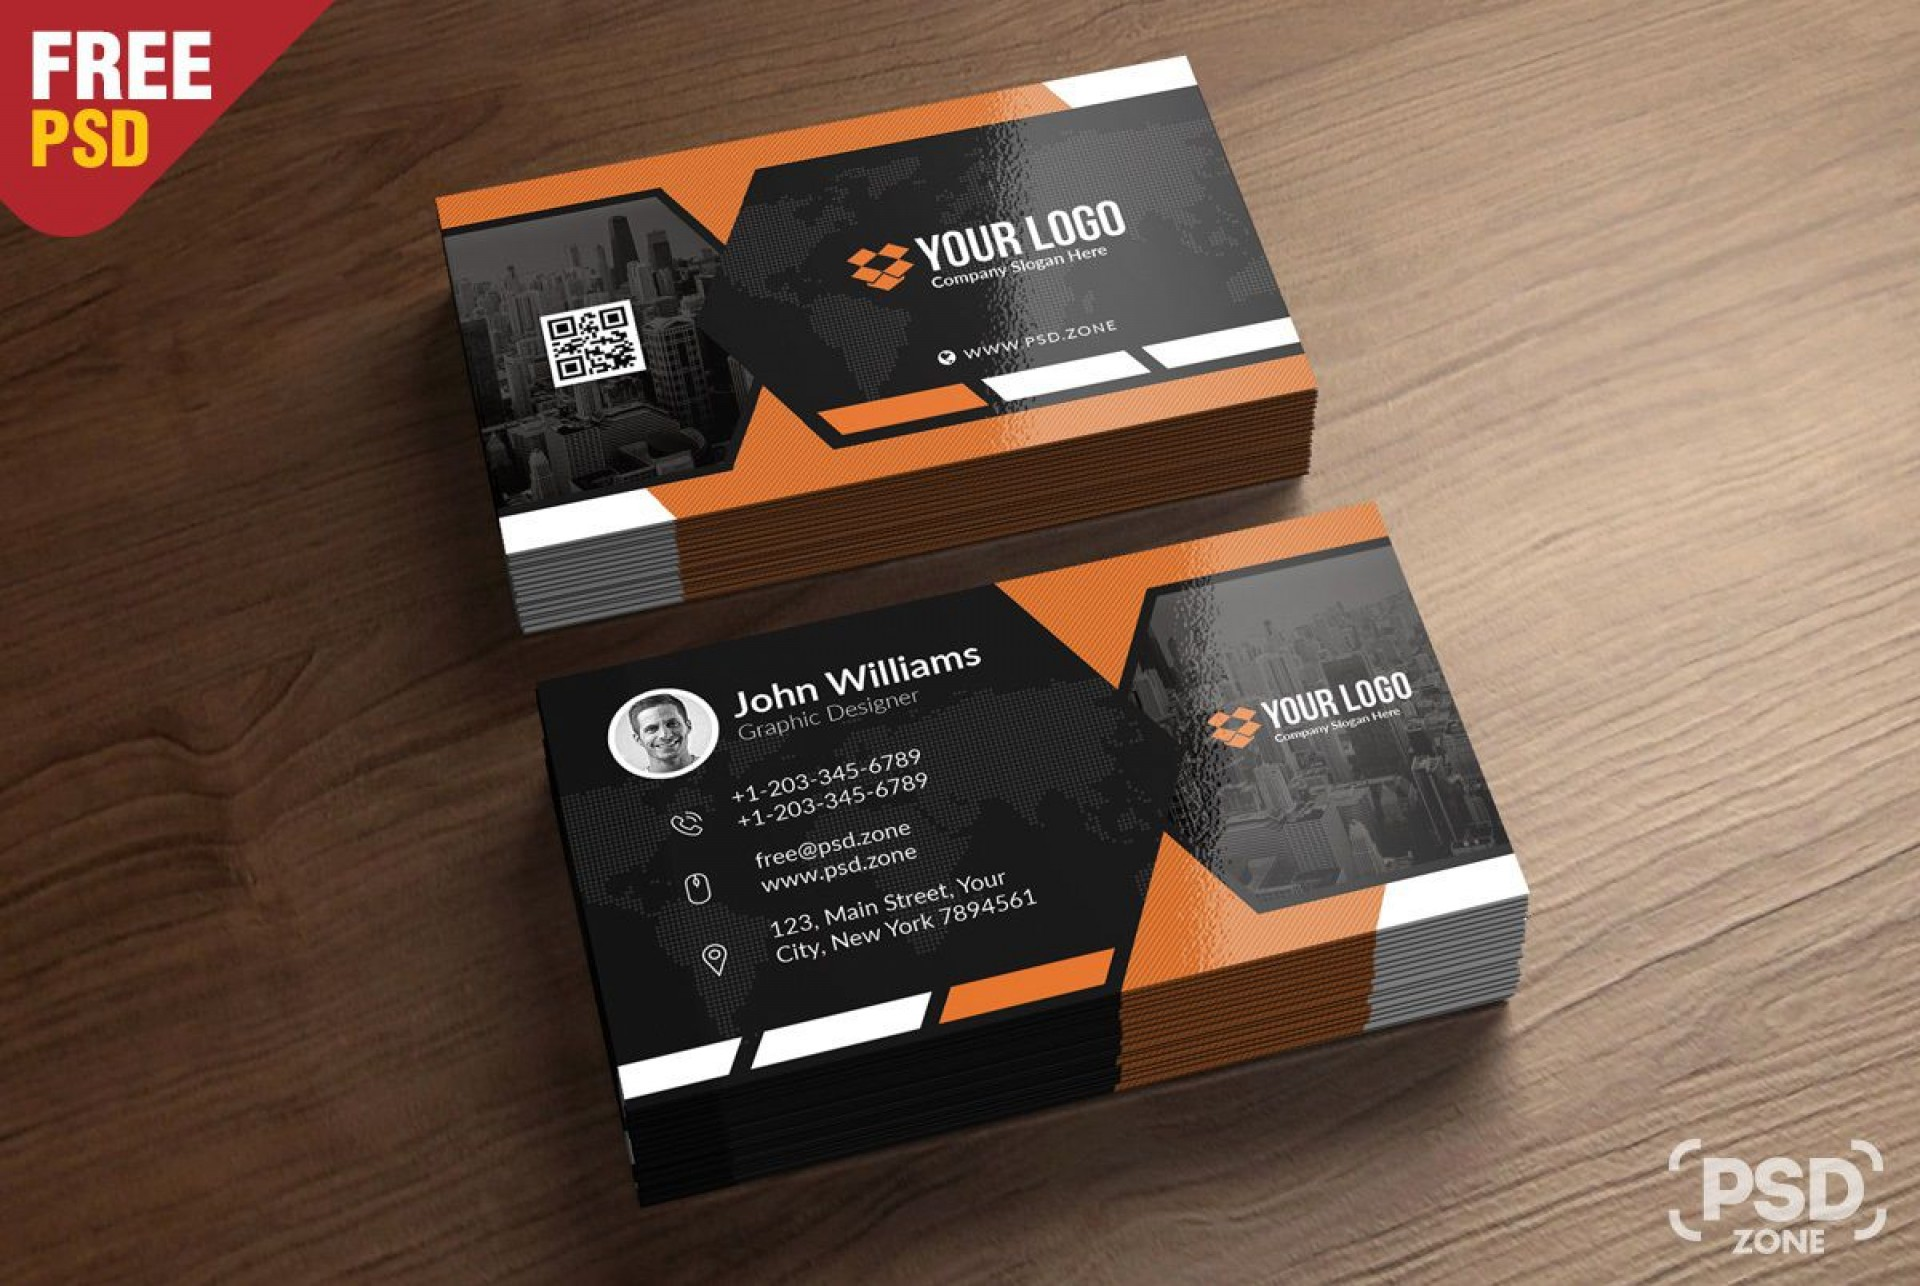 009 Unusual Free Photoshop Busines Card Template Inspiration  Blank Download Adobe Psd Mockup1920